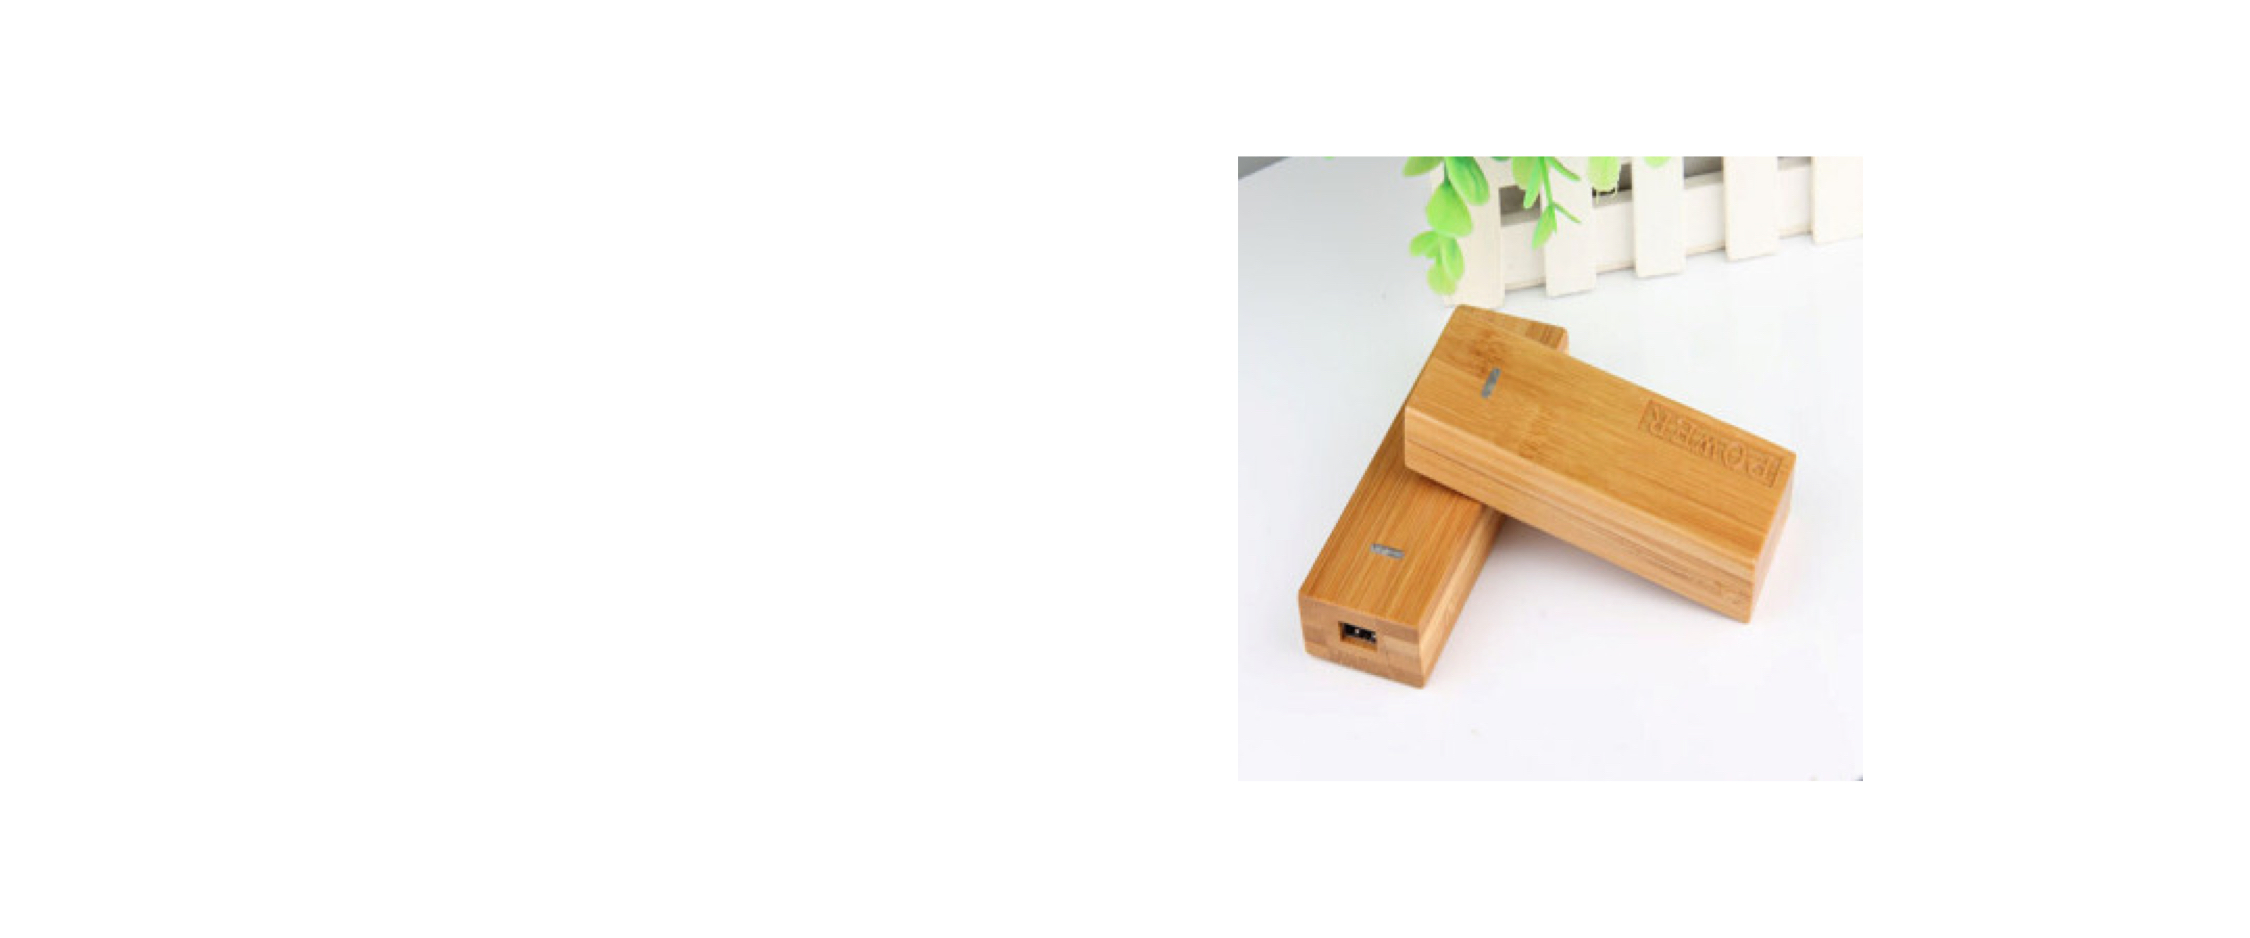 Bamboo Powercharger, Powerbank, Powerstick, Juice Bank.